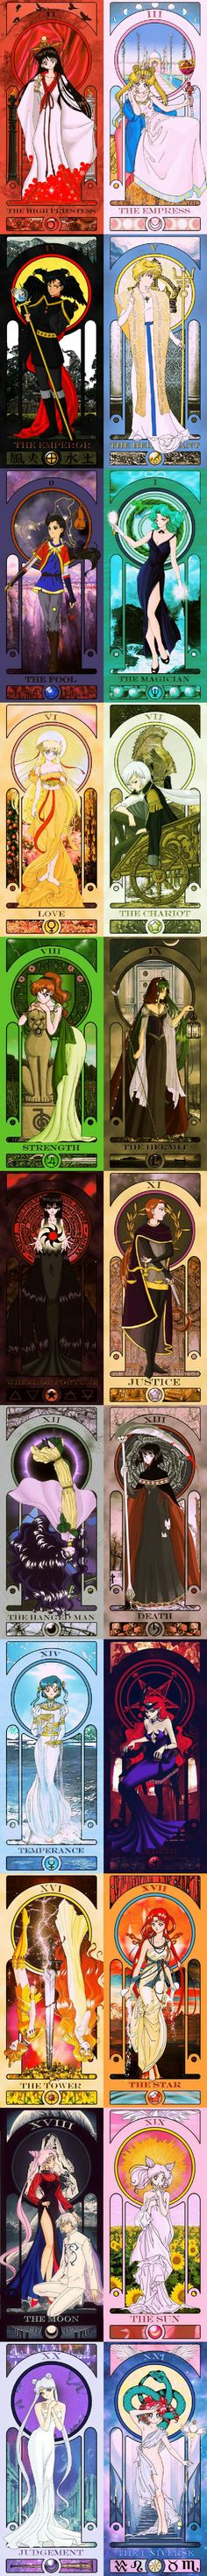 Sailor Moon Tarot cards